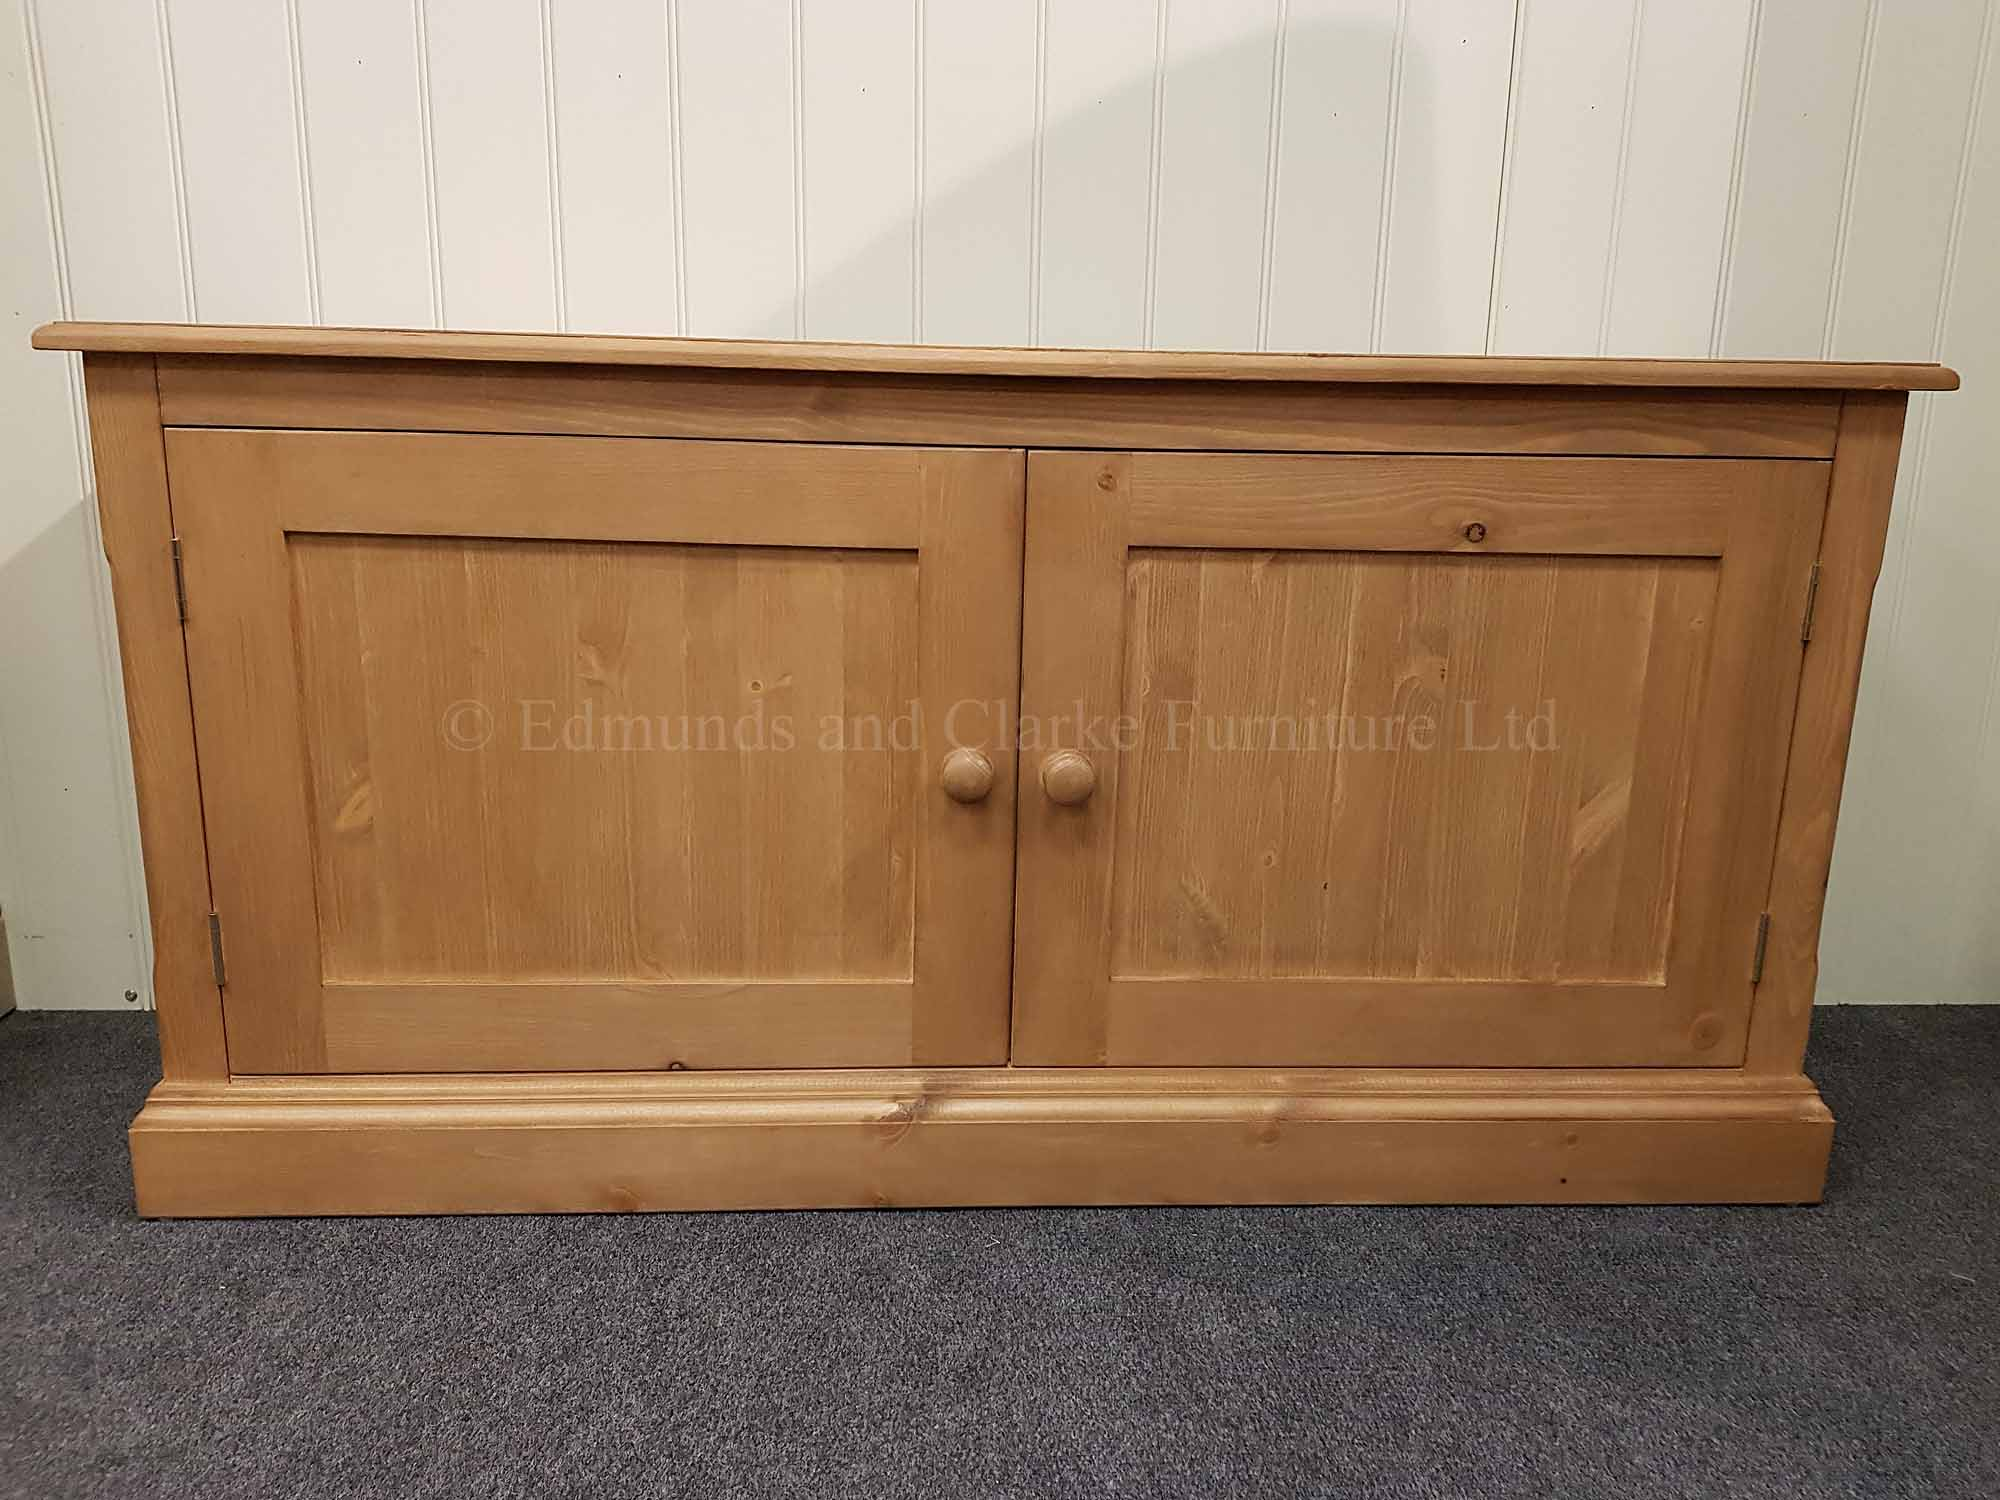 Edmunds waxed cupboard long low 2 door